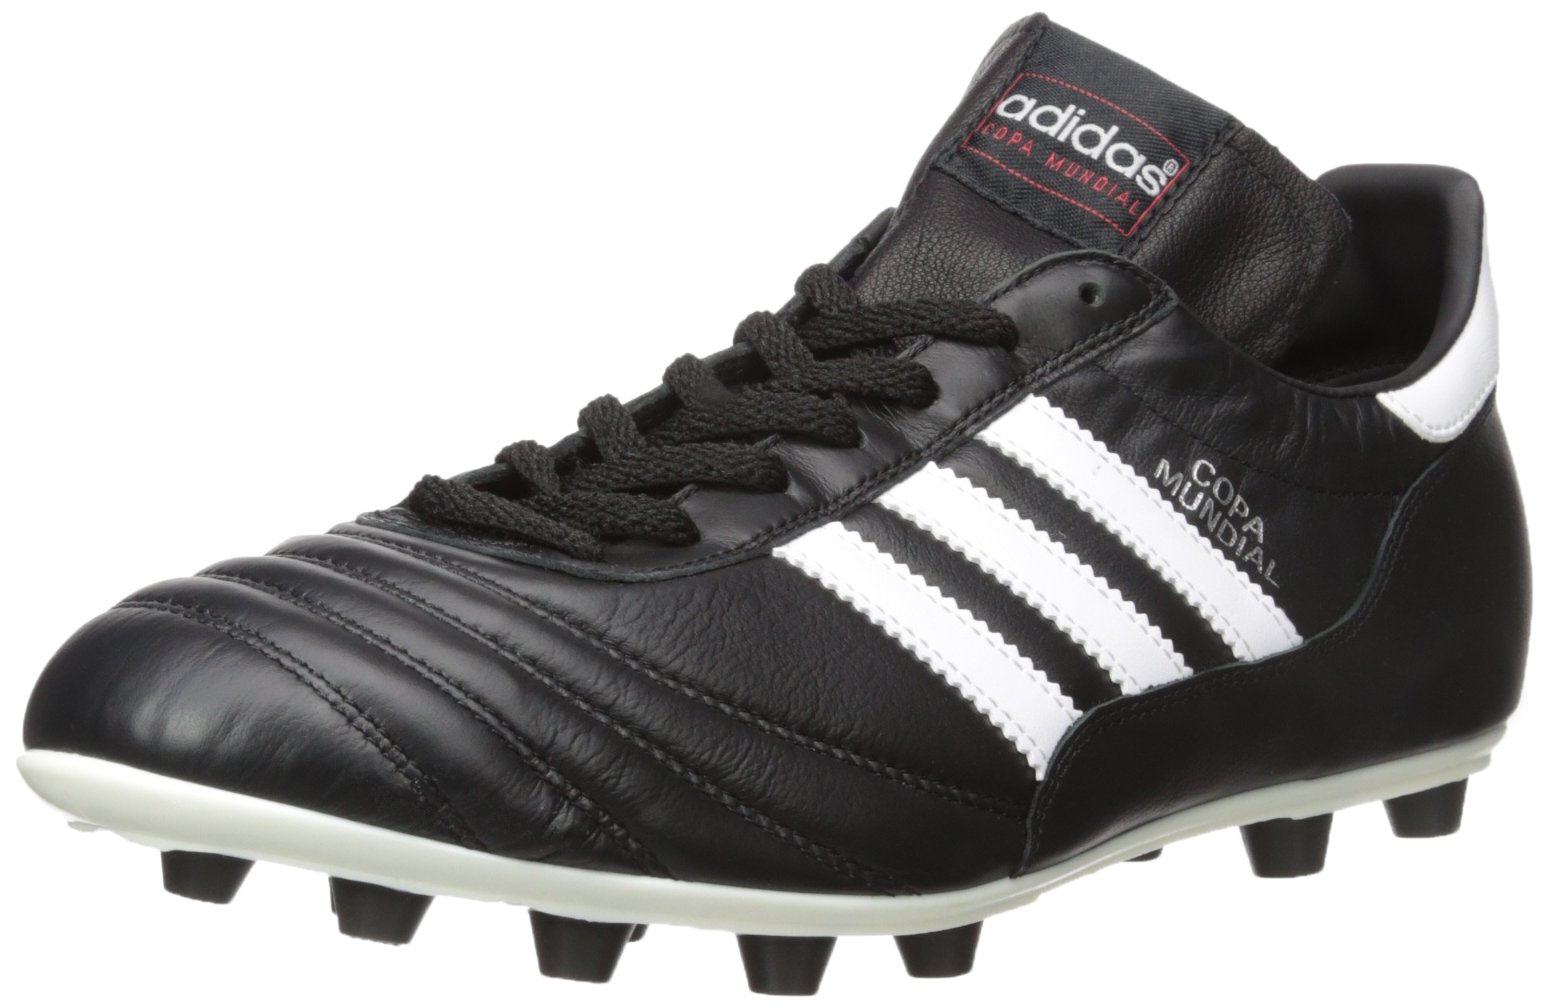 58c0ed7b42a Get Quotations · Adidas Performance Men s Copa Mundial Soccer Shoe